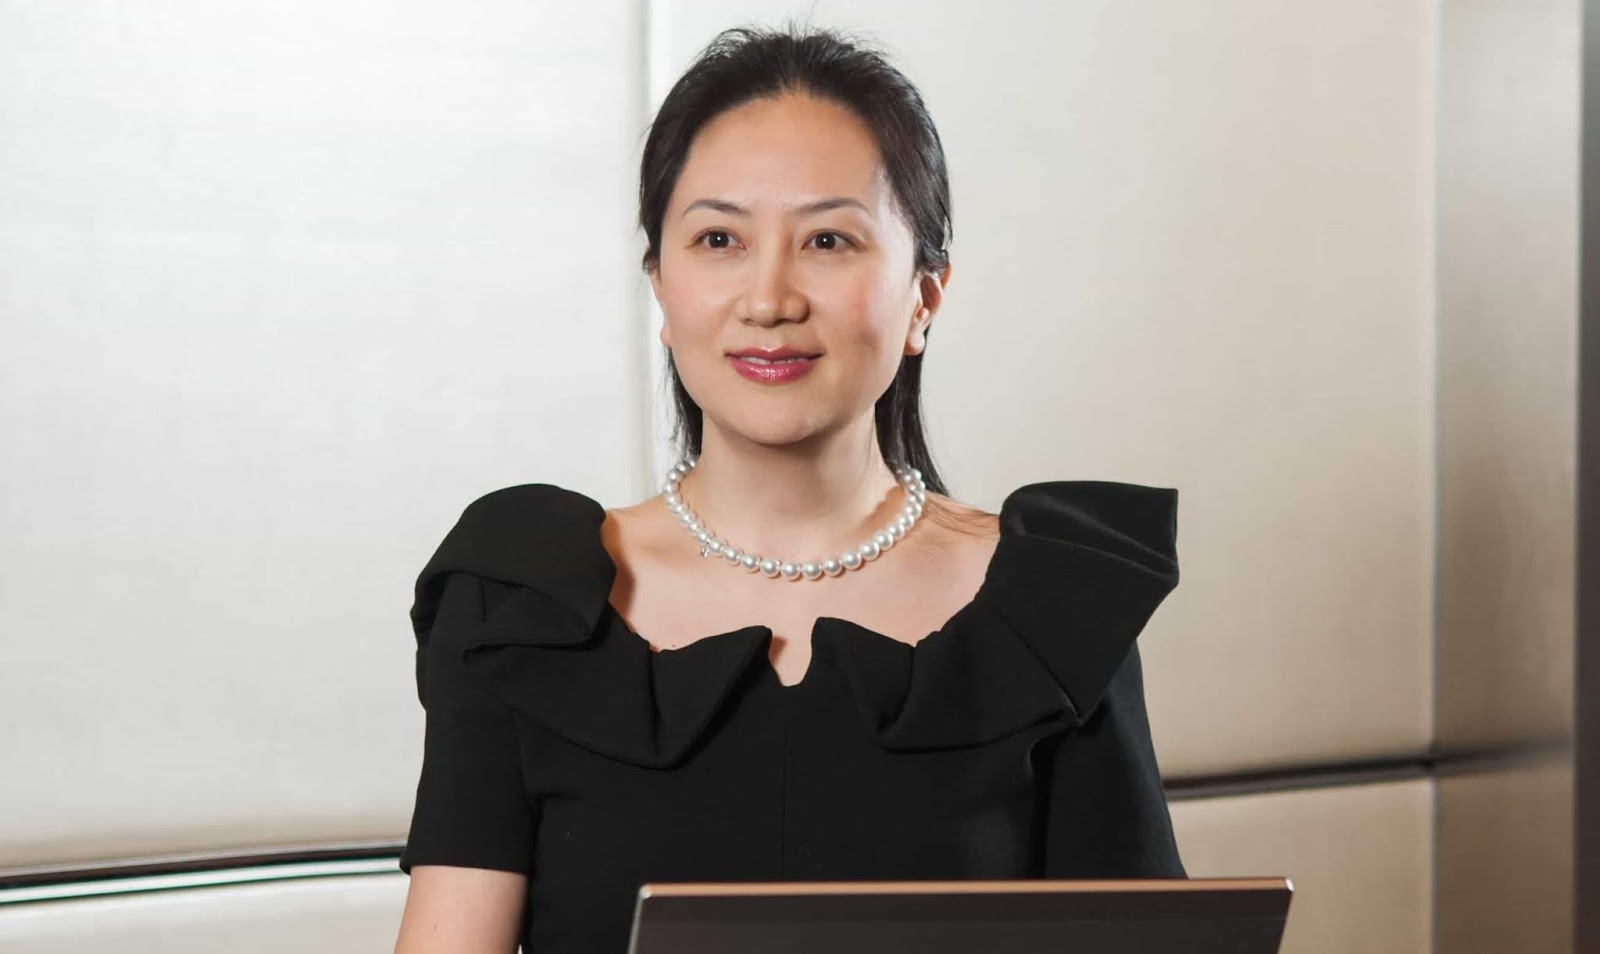 Huawei CFO 'Meng Wanzhou' Arrested In Canada For Extradition To U.S.